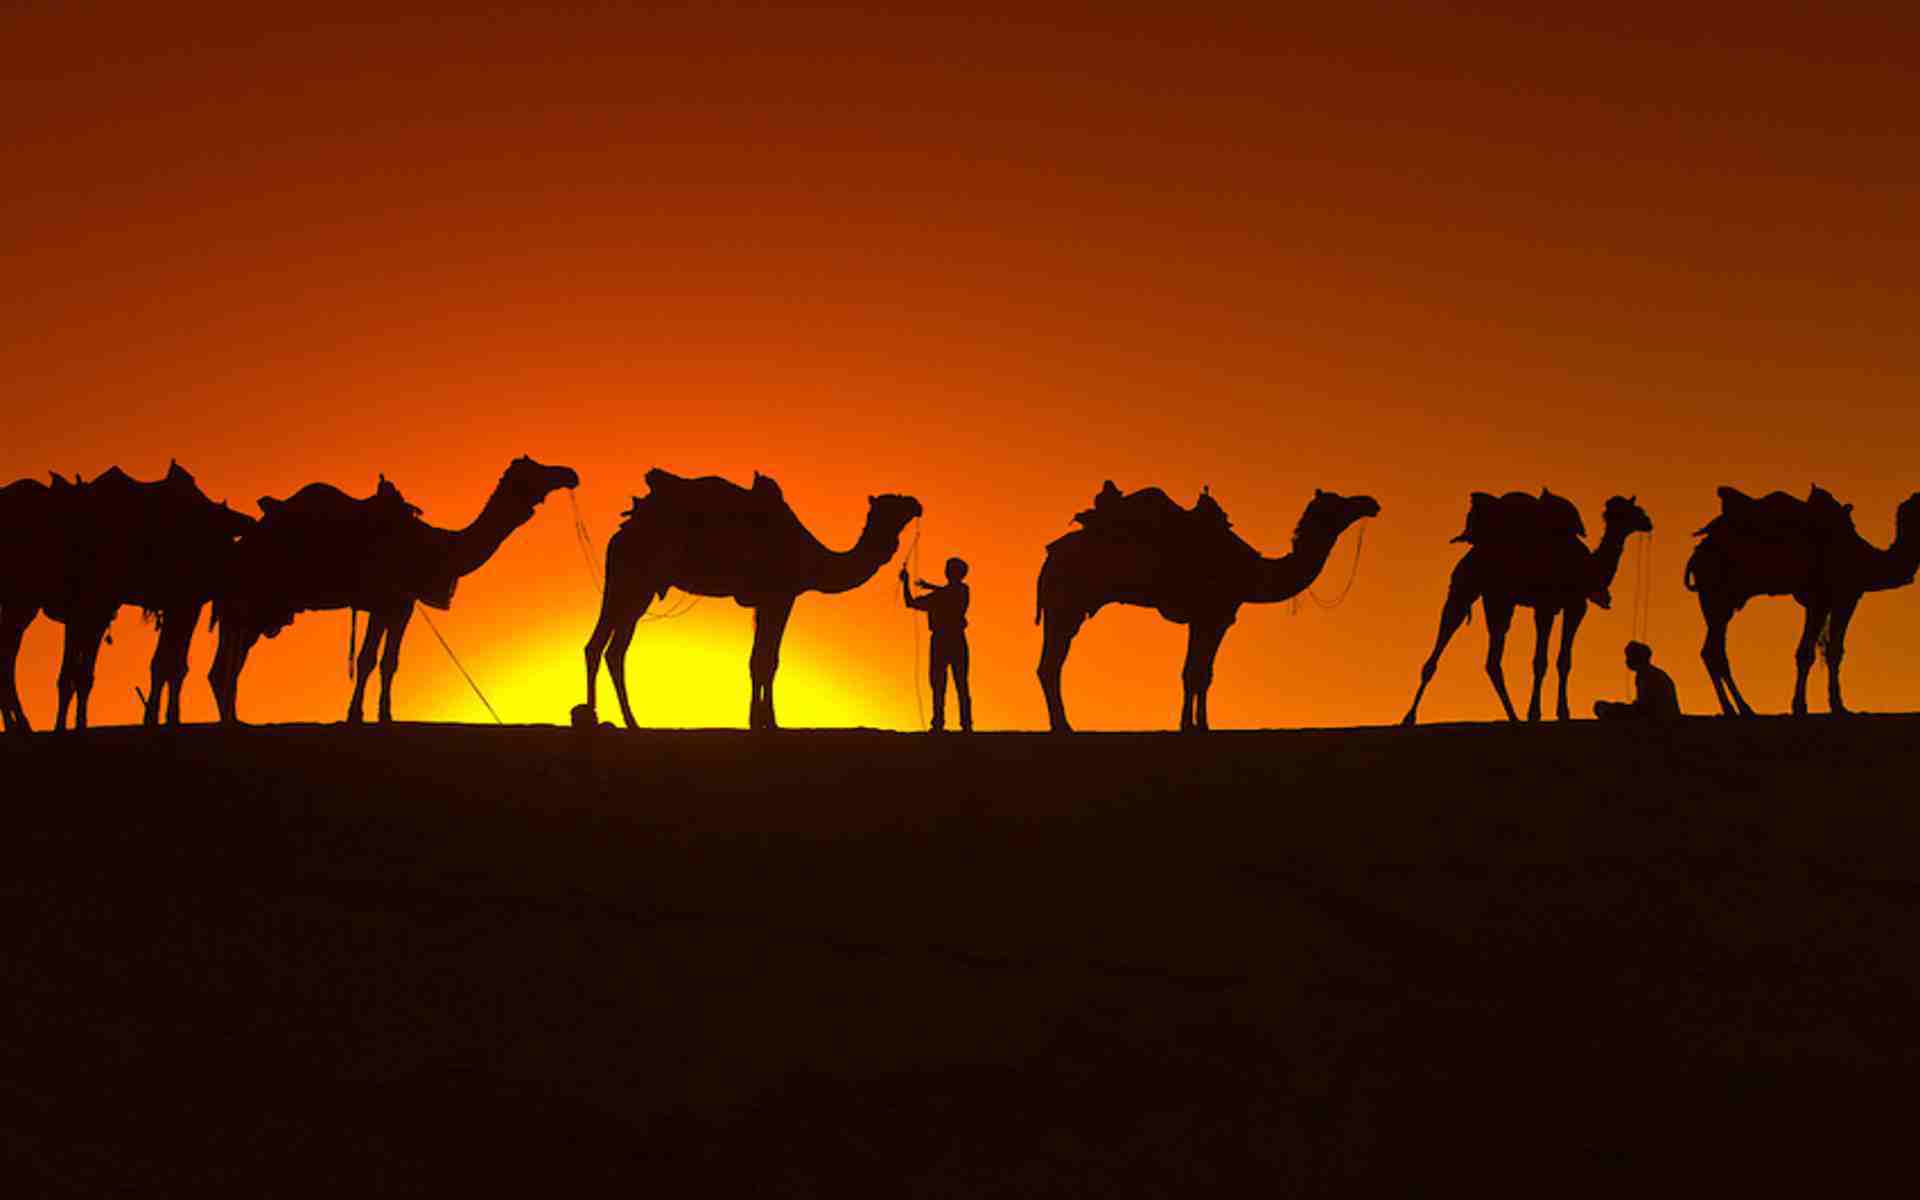 desert and camel wallpaper hd - photo #27